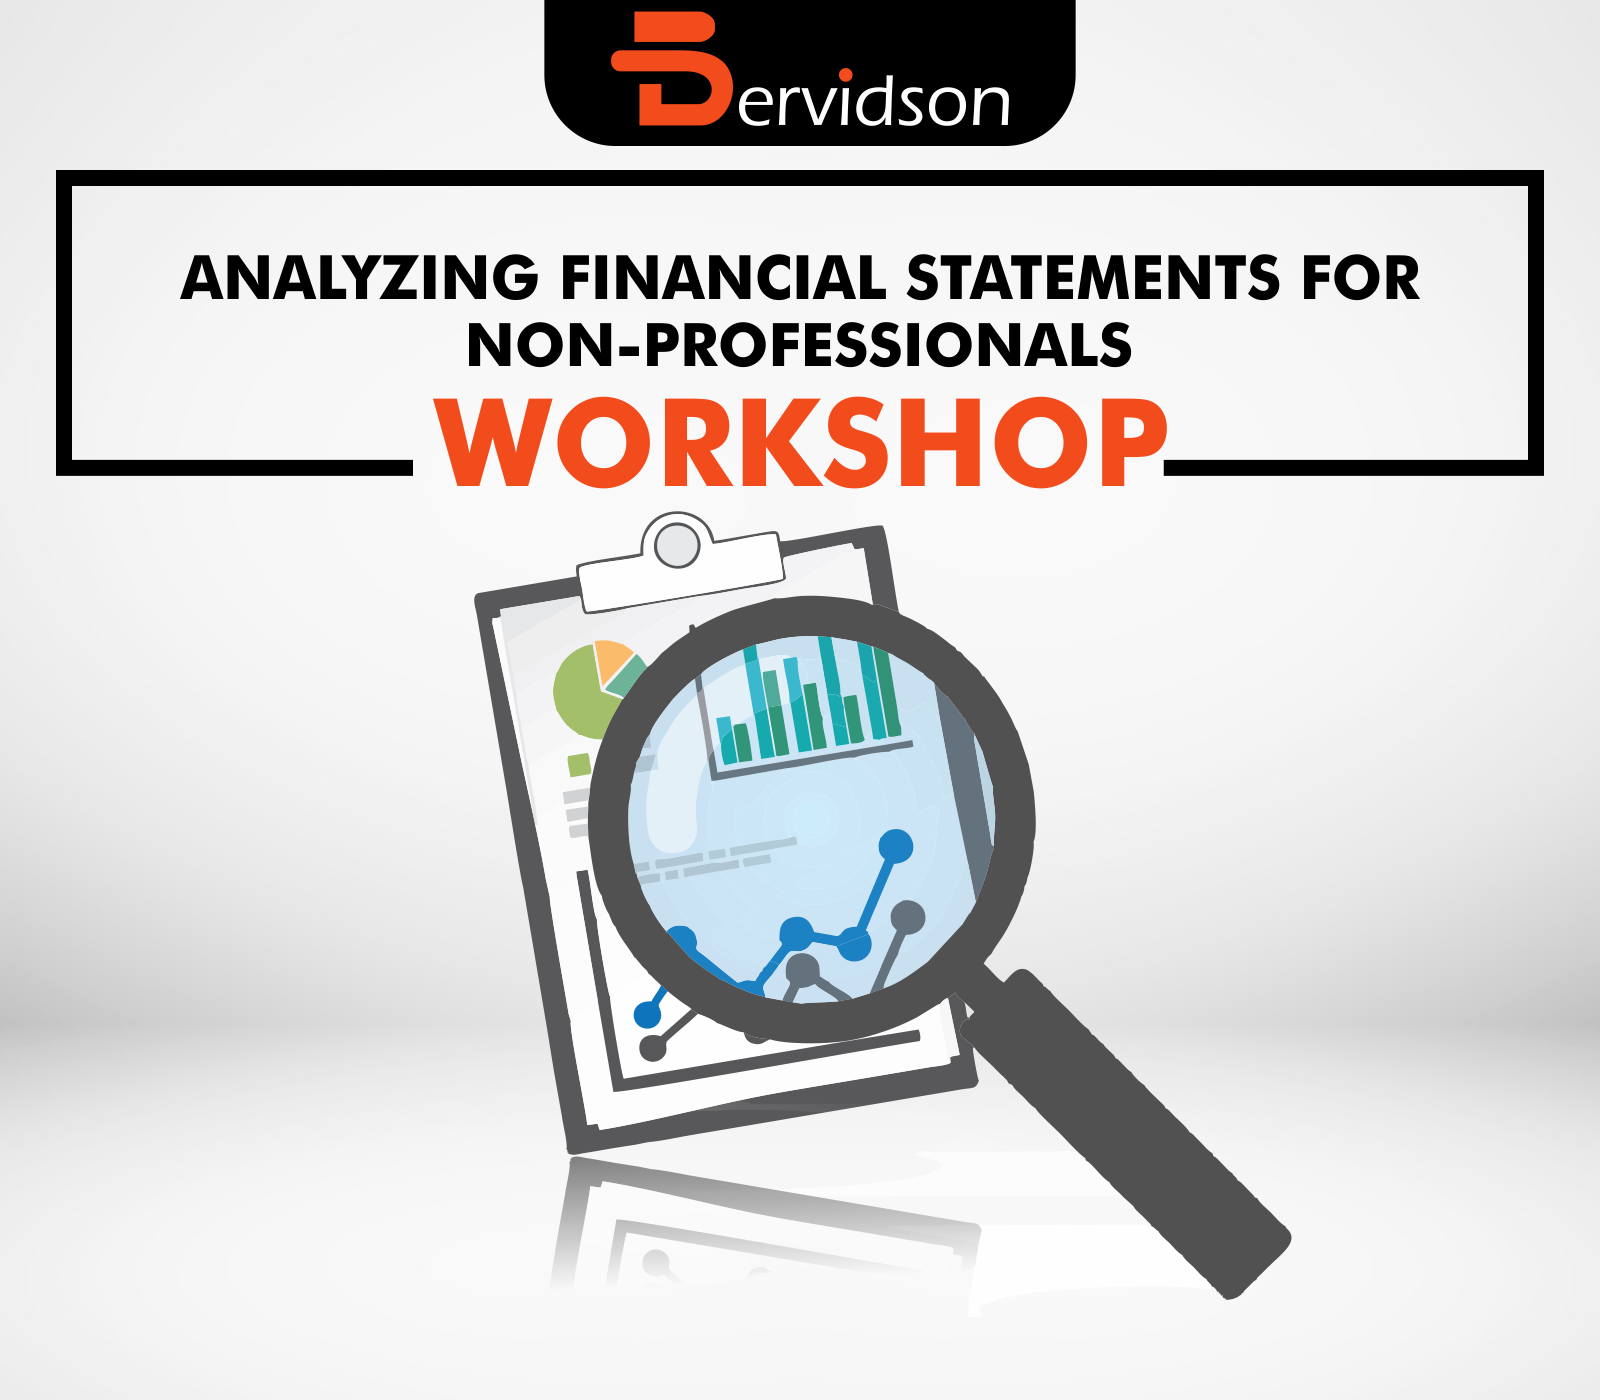 Analyzing Financial Statements for Non-Professionals Workshop